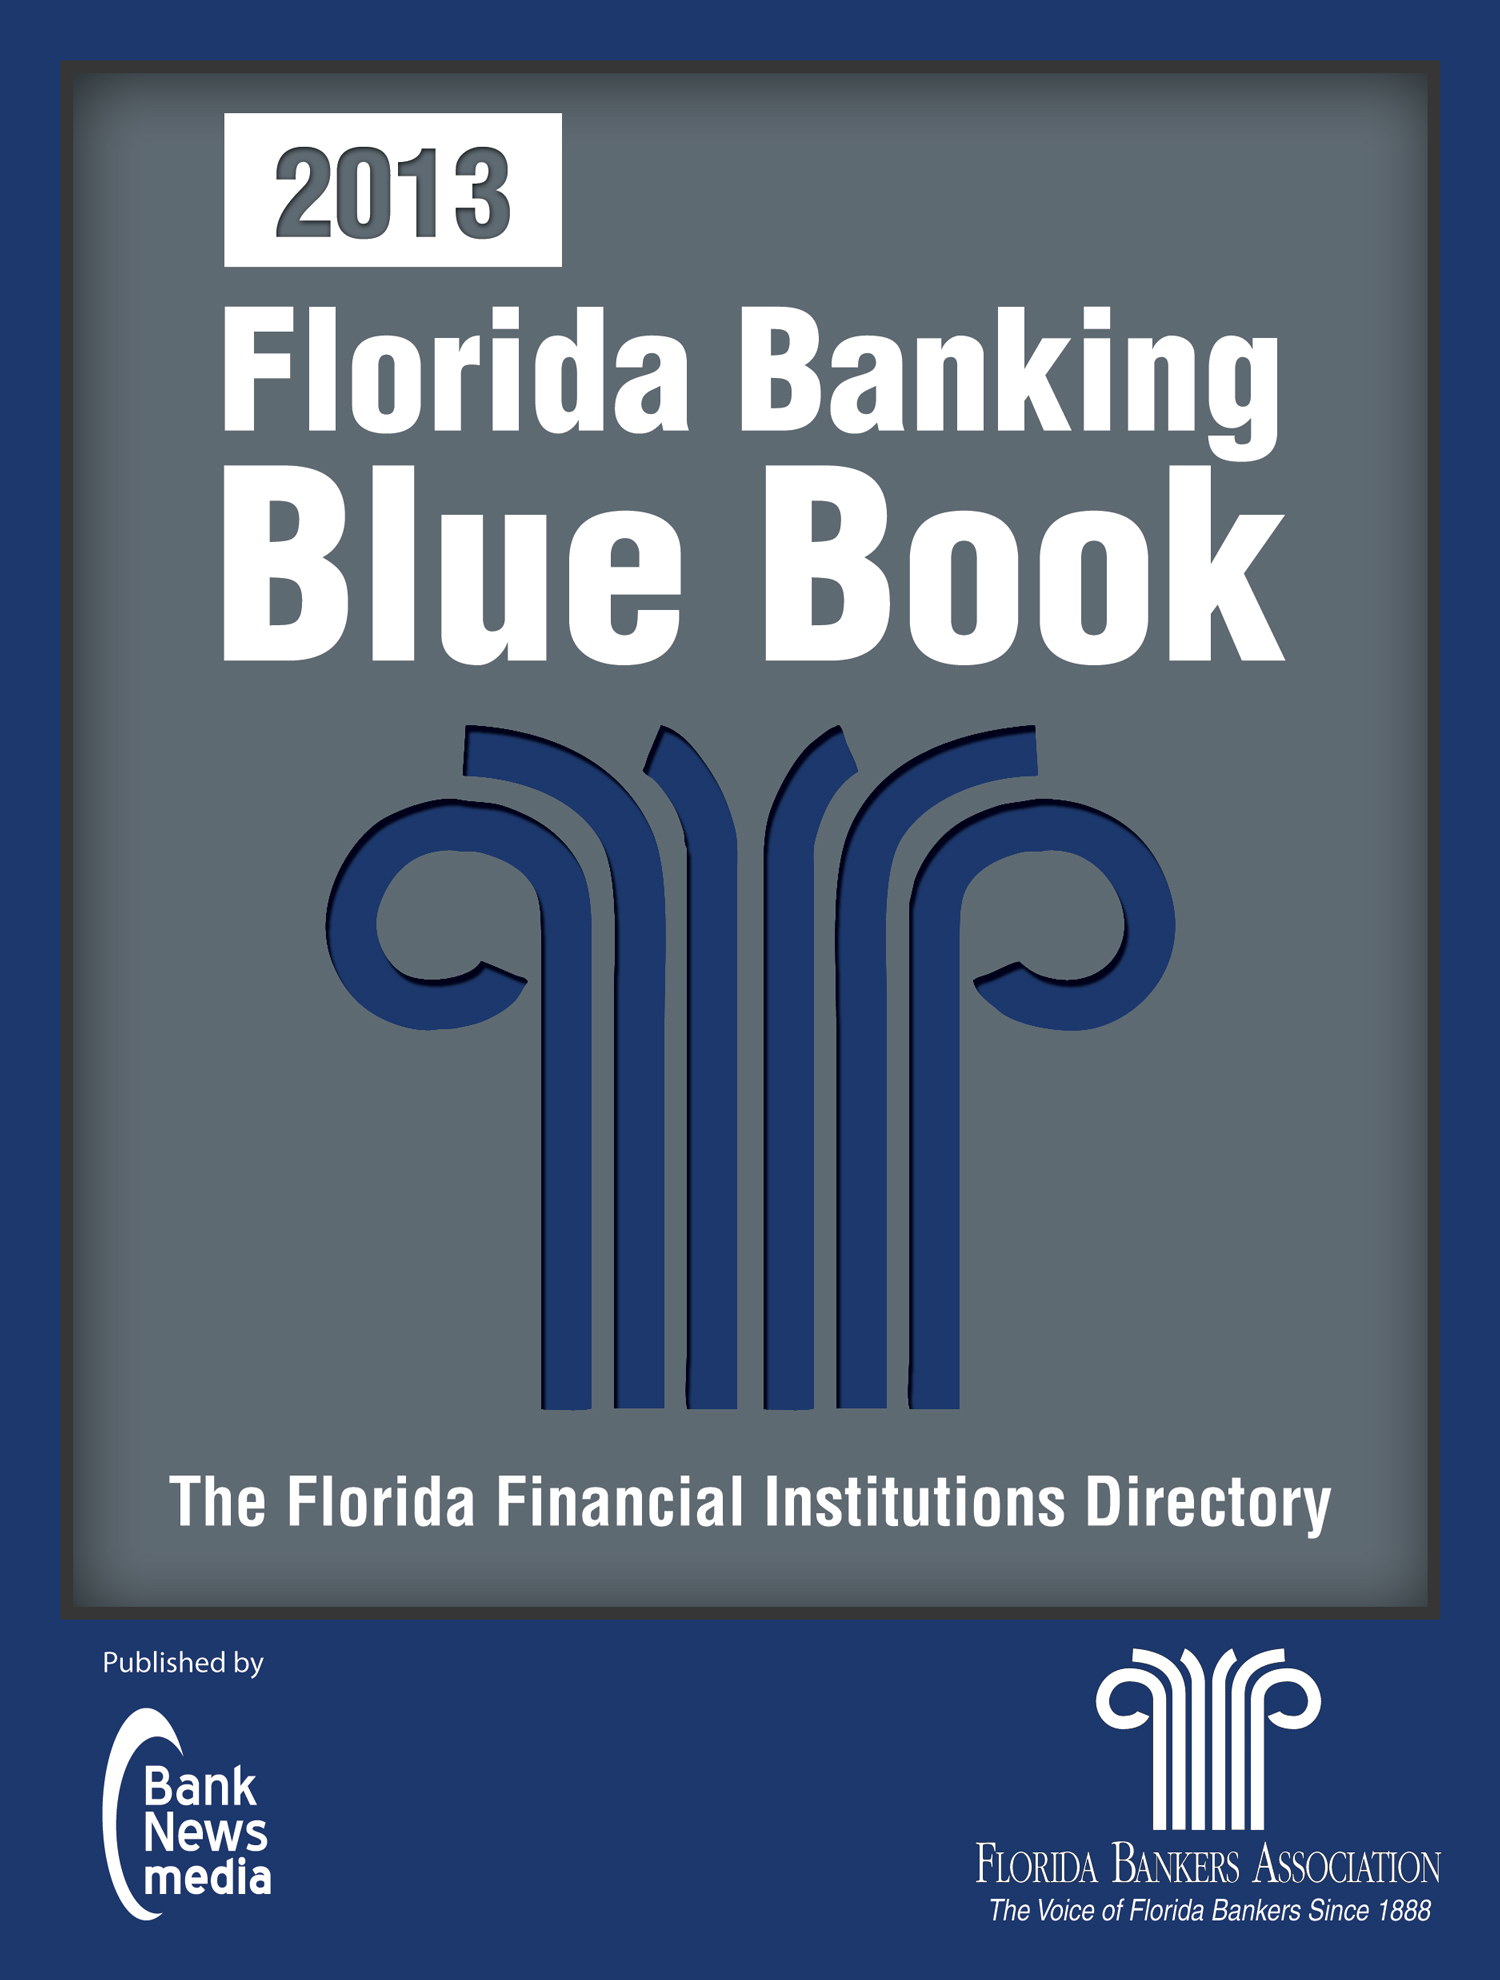 2013 Florida Banking Blue Book Print - $75.00 Member - Availble December 2012